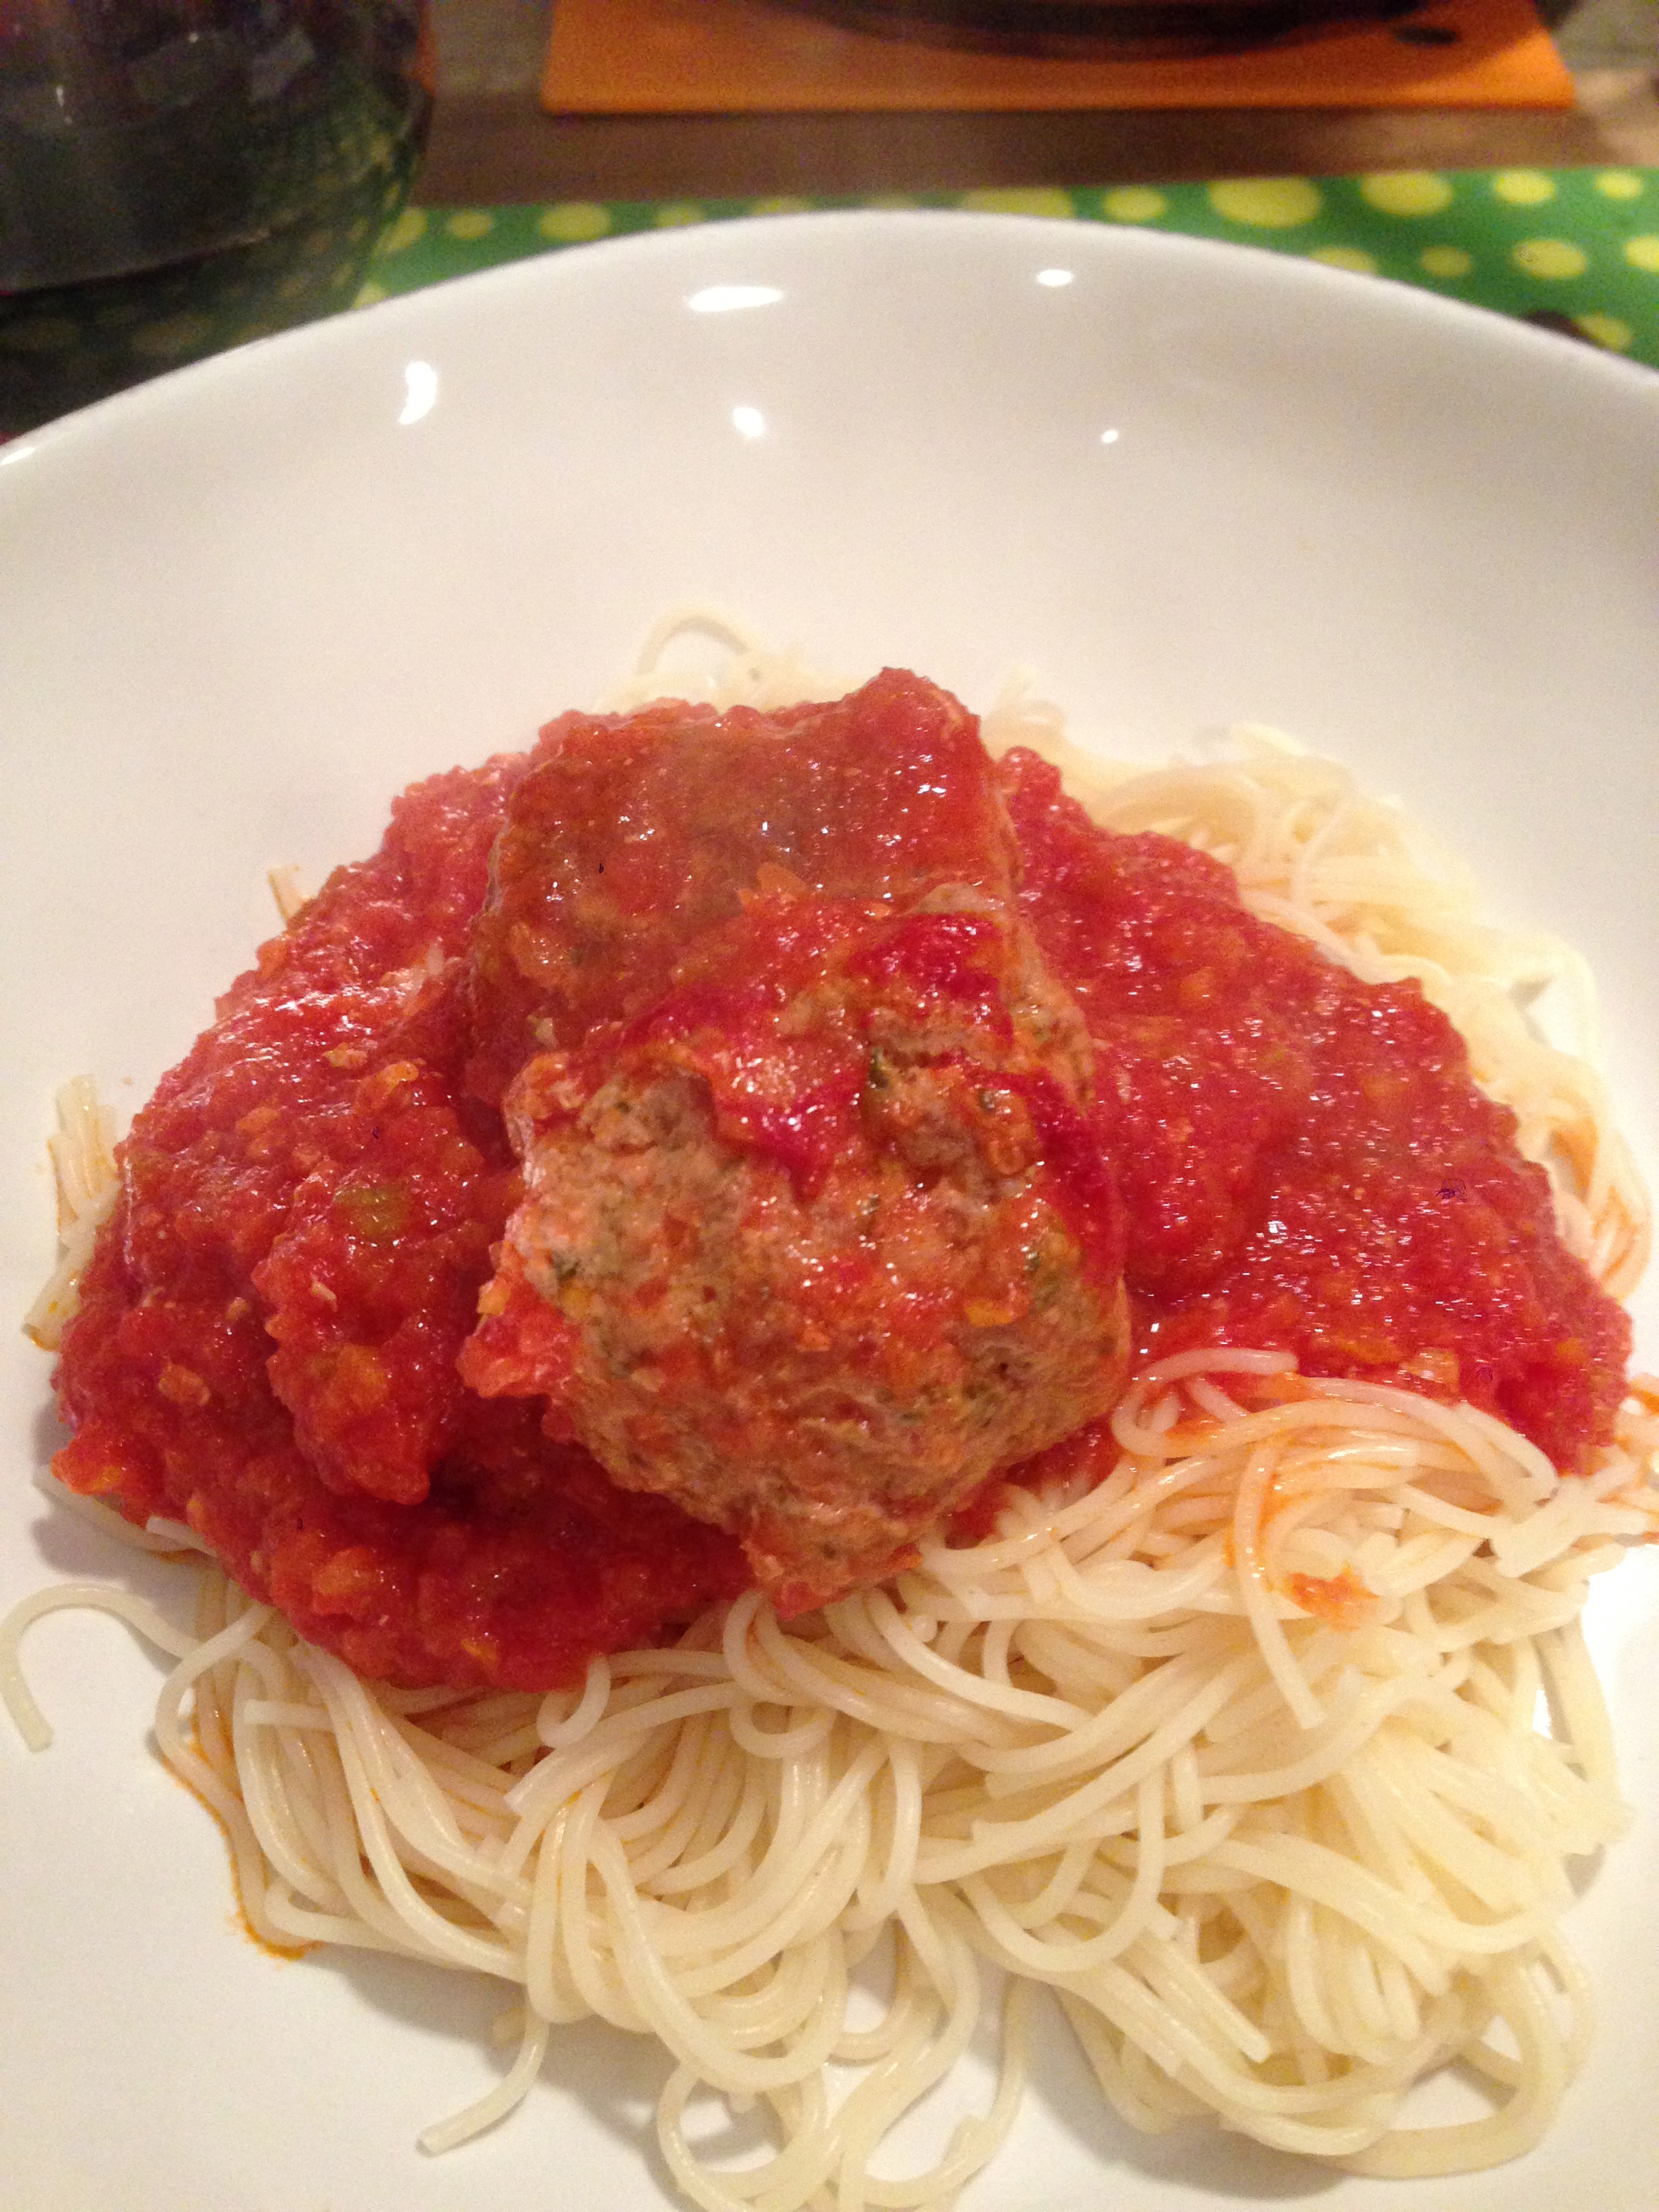 …and, THIS is Exciting! (Yes, meatballs.)